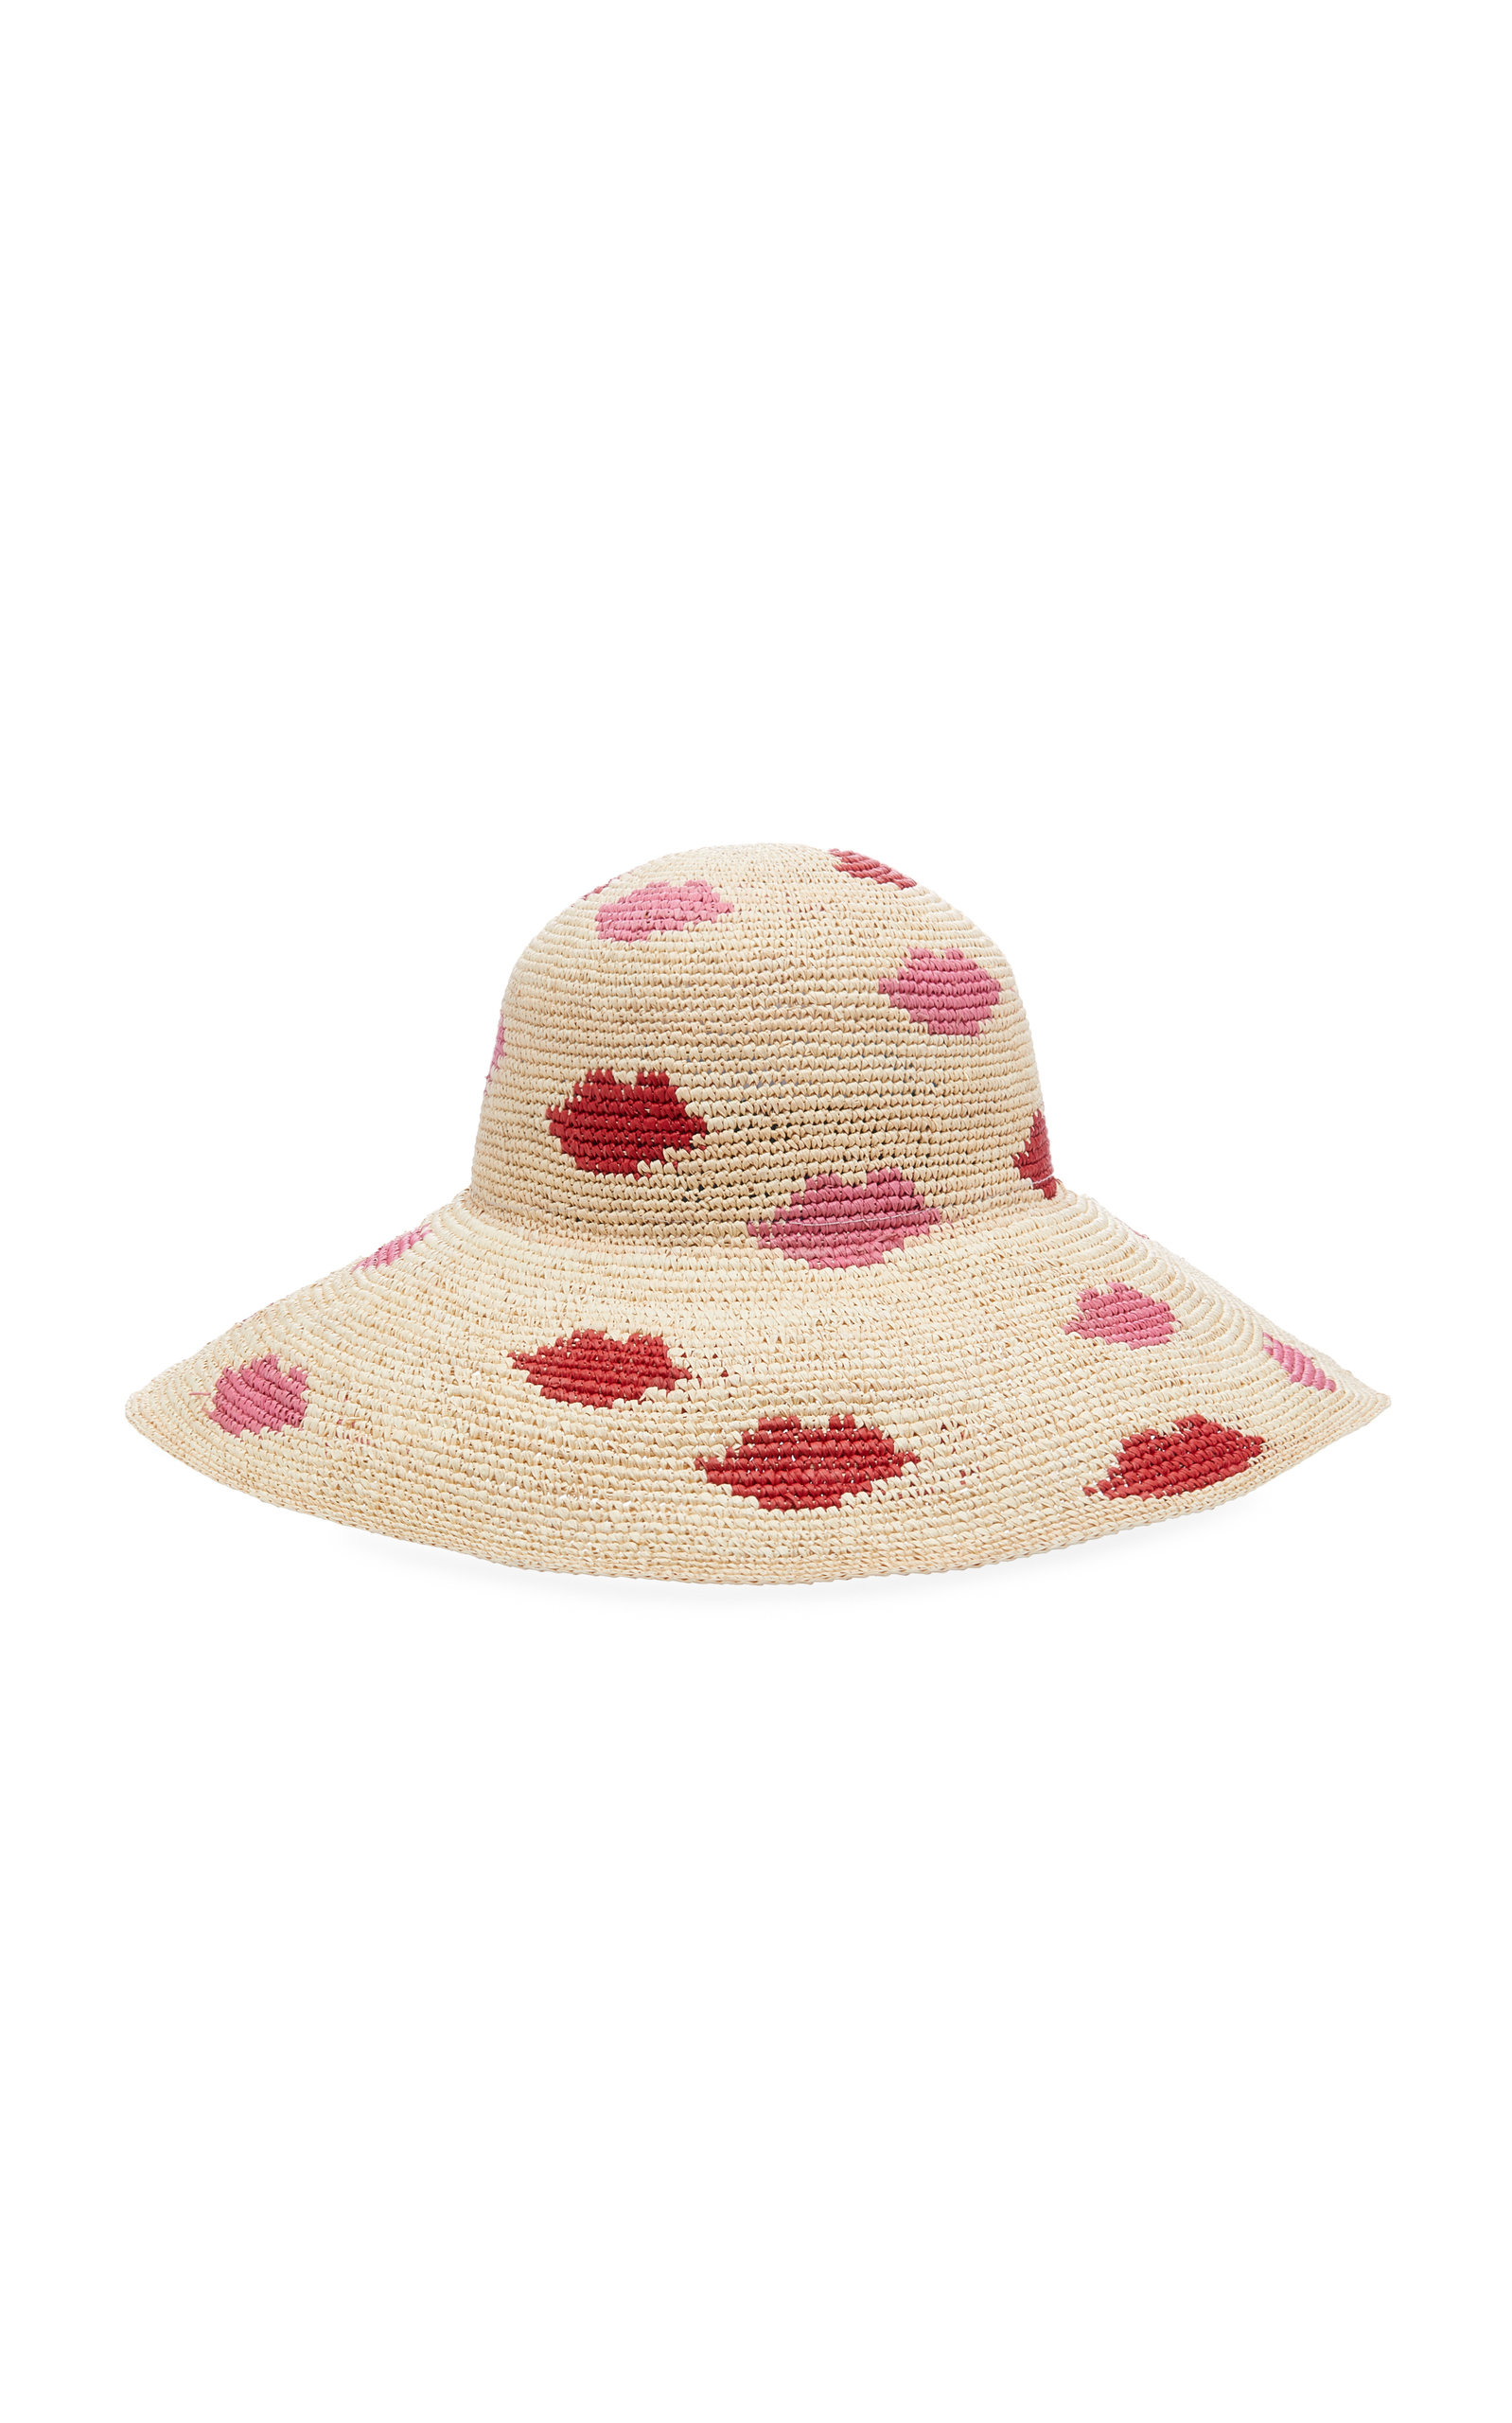 YESTADT MILLINERY Kisses Patterned Straw Hat in Neutral